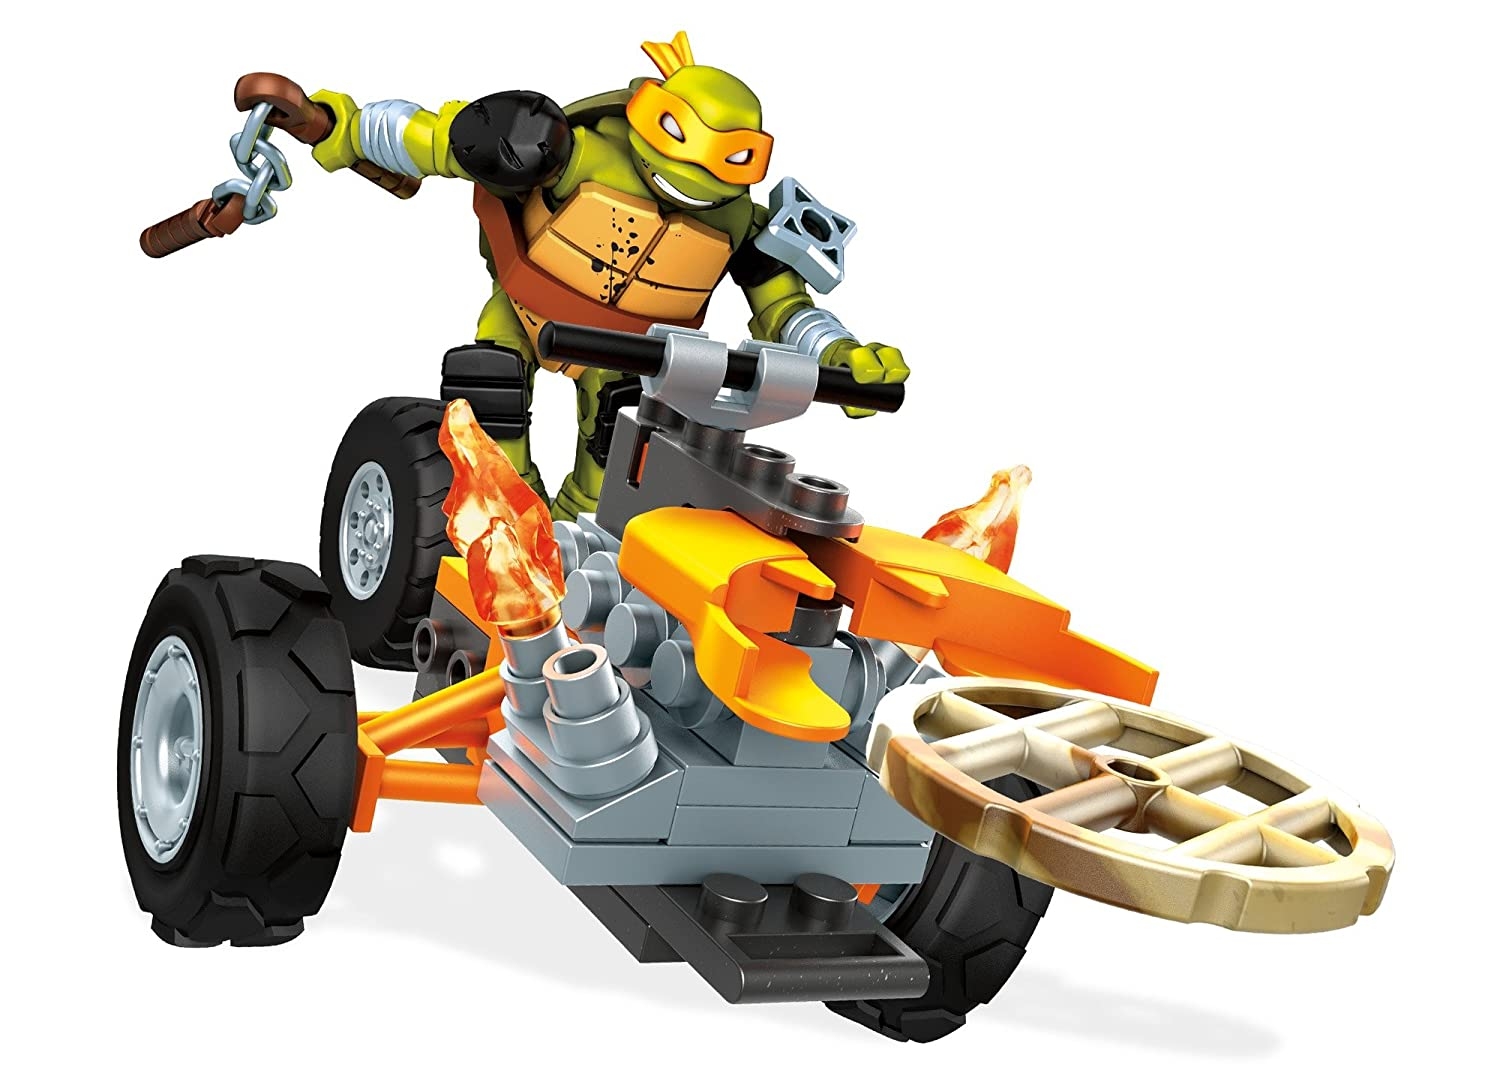 Mega Construx Teenage Mutant Ninja Turtles Mikey Stealth Building Kit